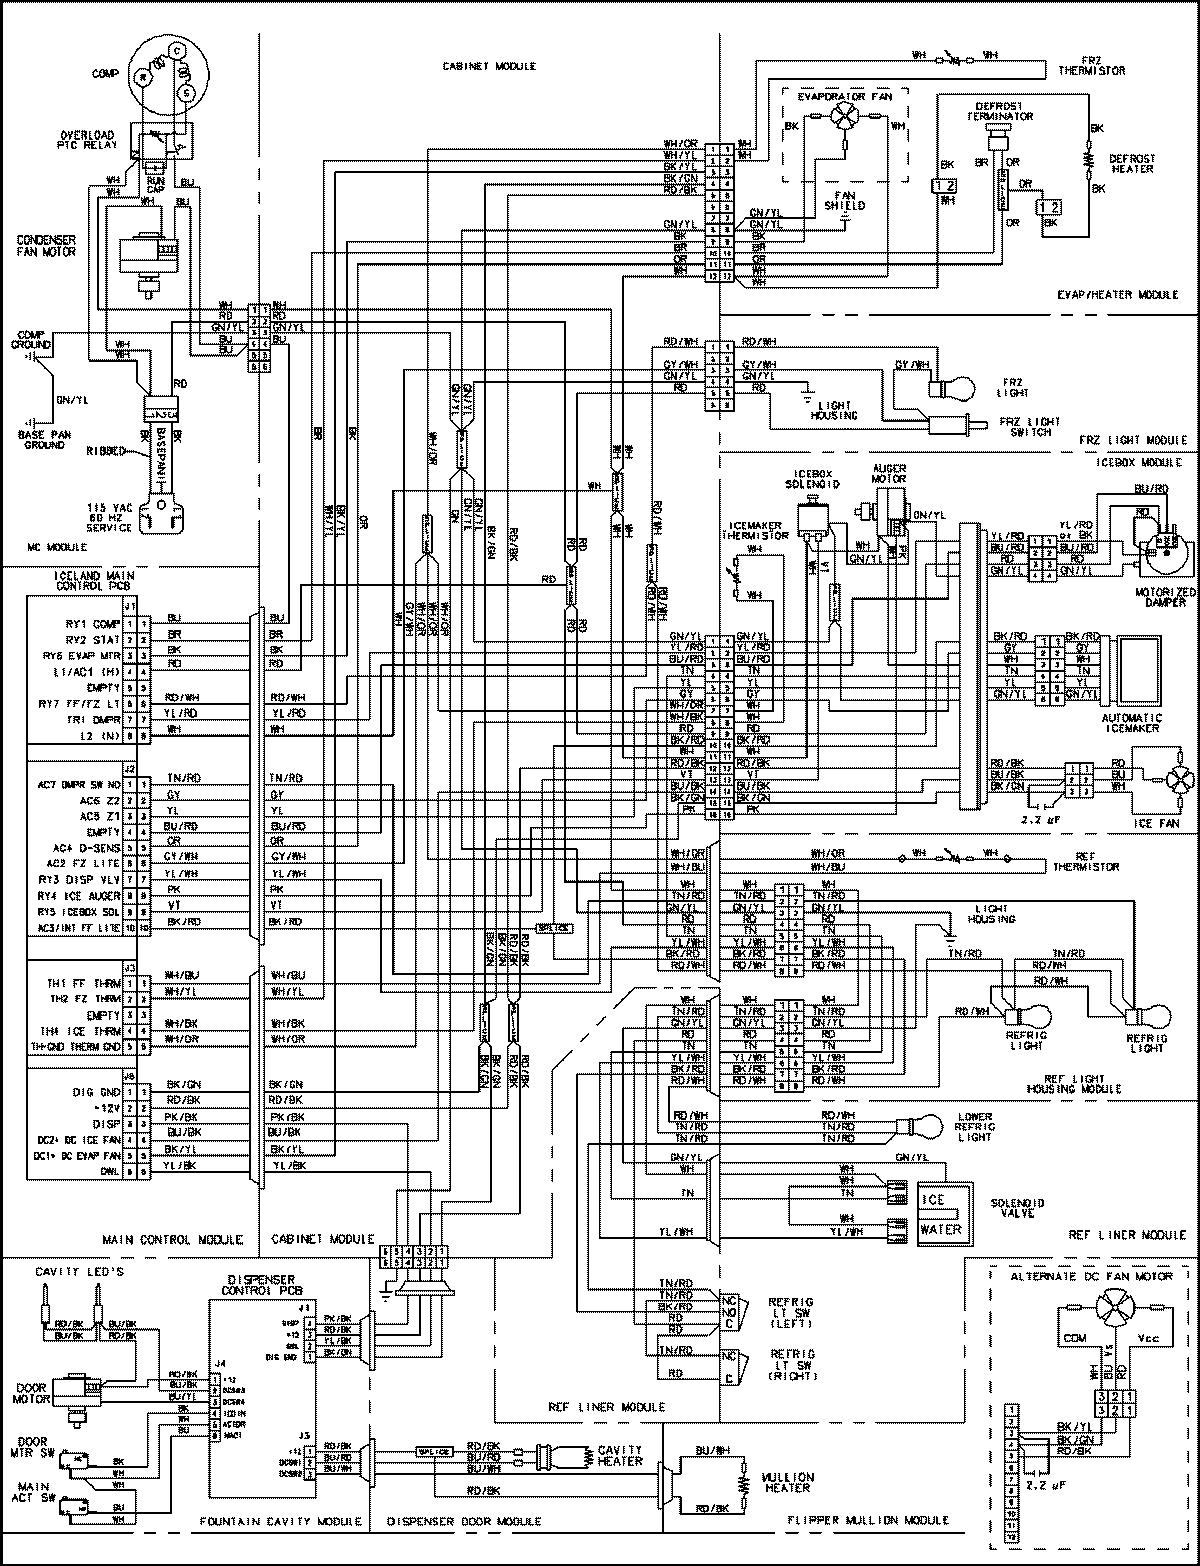 Lg Refrigerator Parts Diagram Awesome Maytag Thermostat Schematic Wiring 8  | Ge refrigerator, Refrigerator lg, Diagram | Refrigerator Parts Schematic |  | Pinterest